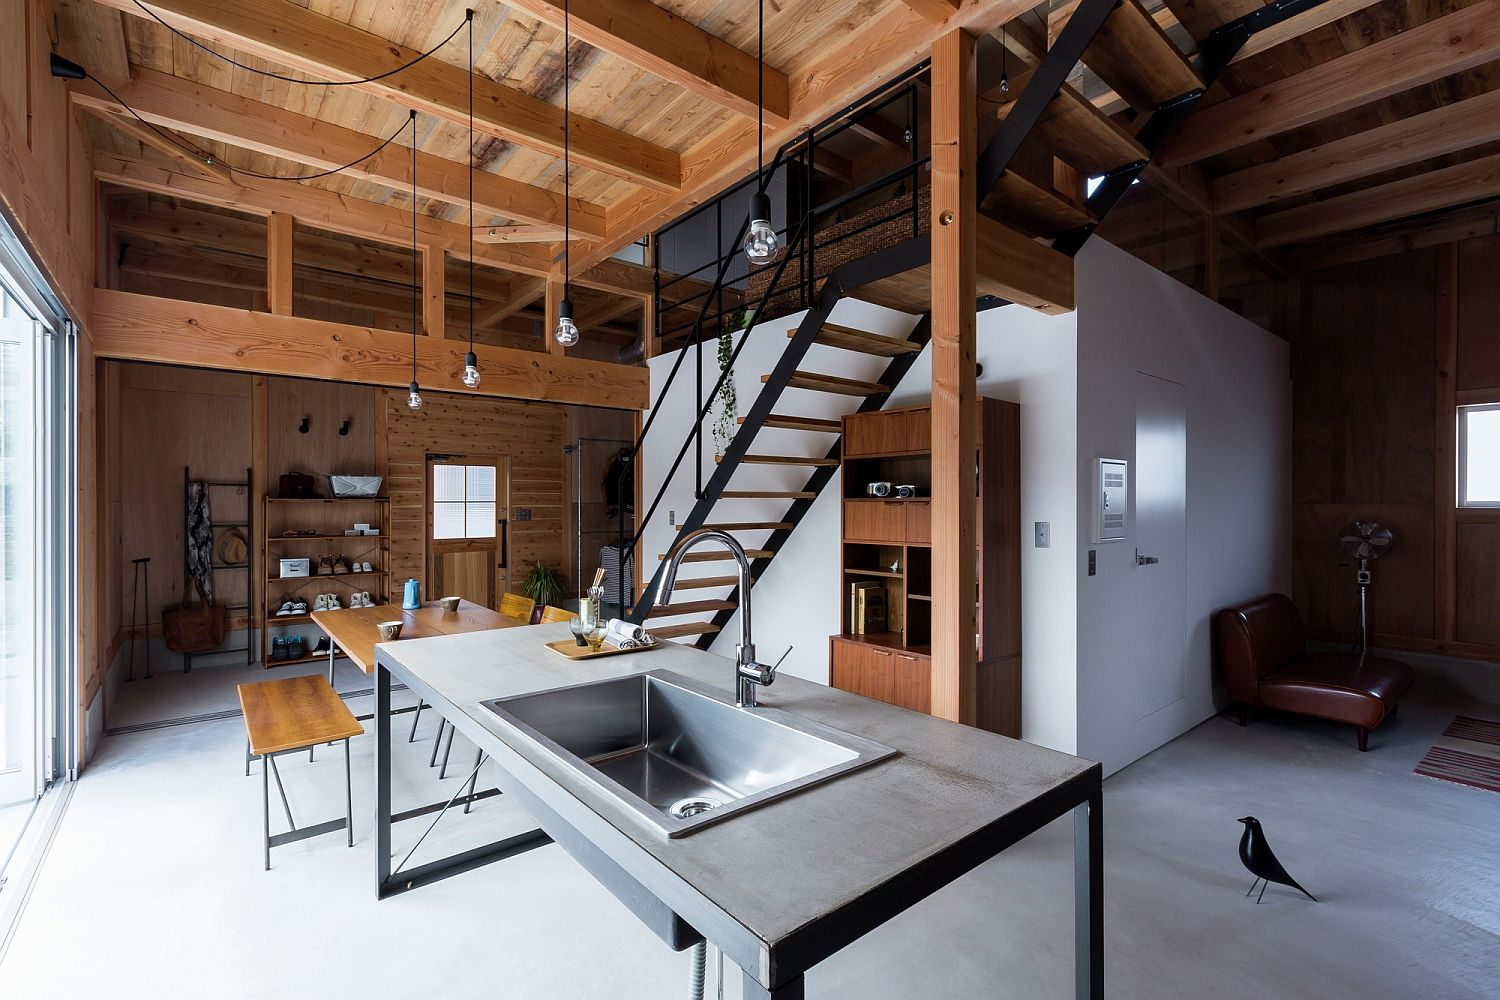 Interior of the home mimics the style and appeal of a renovated warehouse